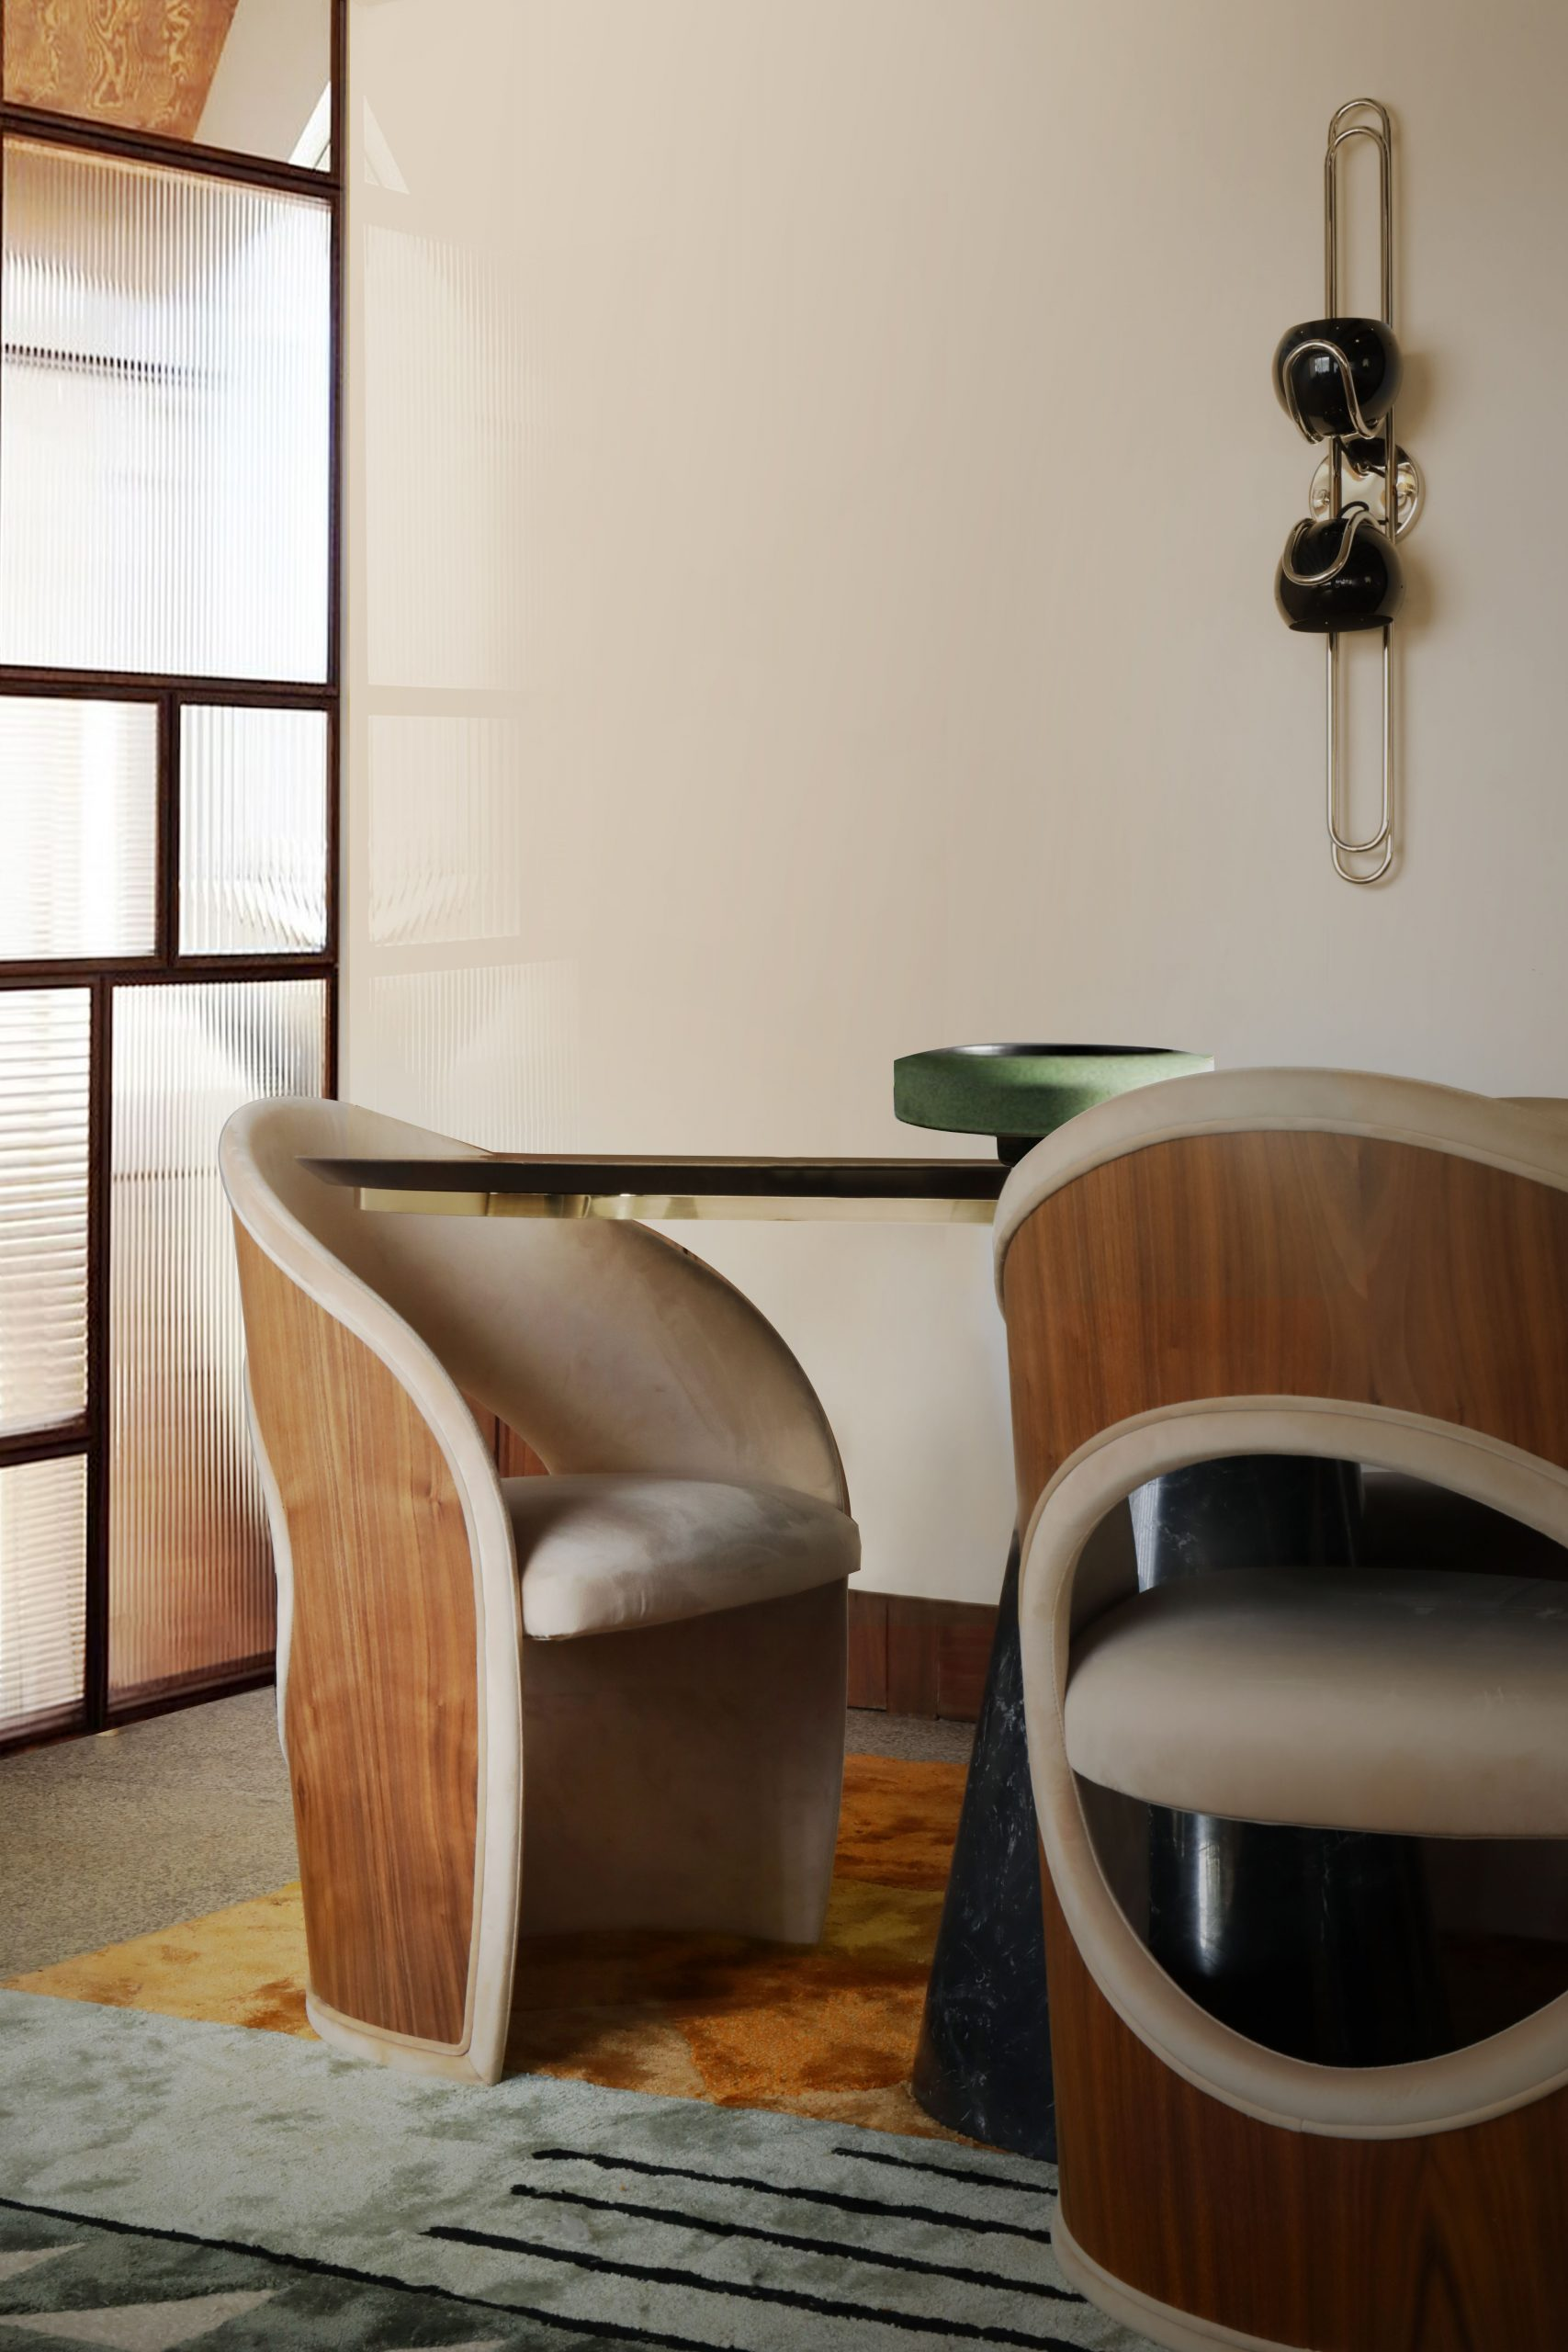 A COMFY MID-CENTURY STYLED DINING ROOM